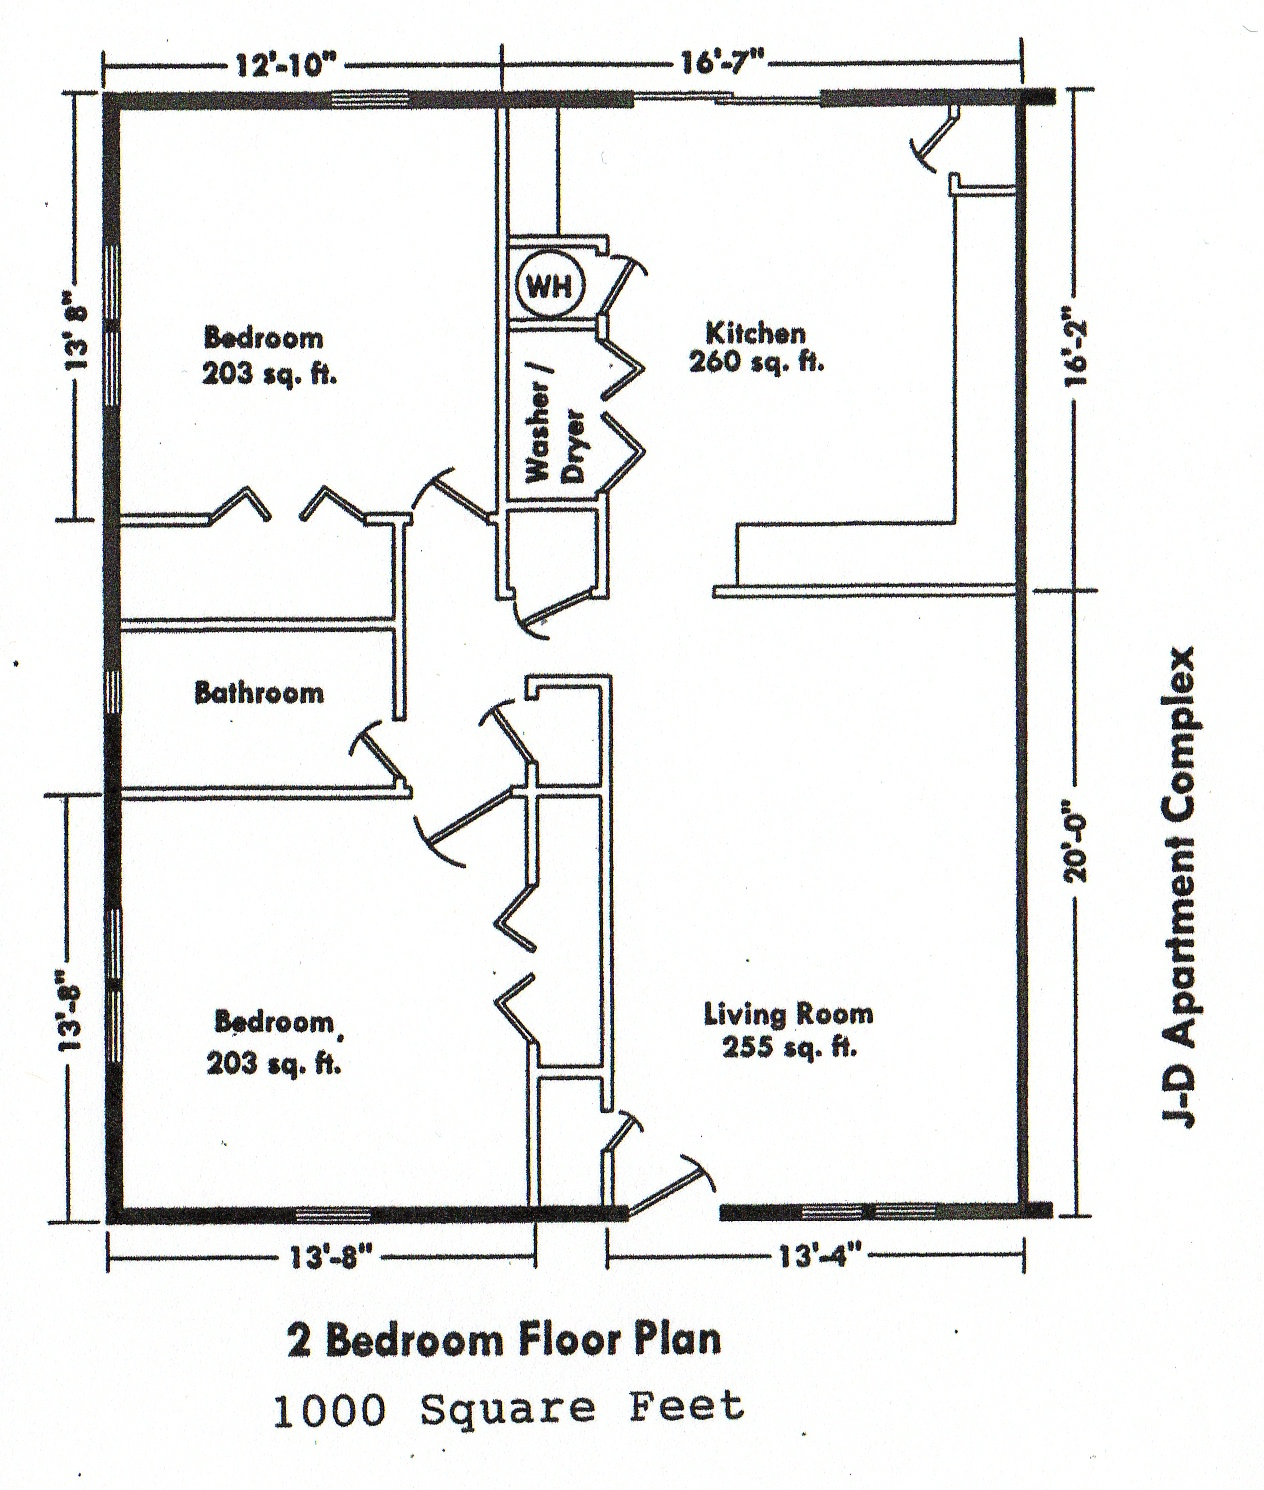 Bedroom floor plans over 5000 house plans Sample 2 bedroom house plans